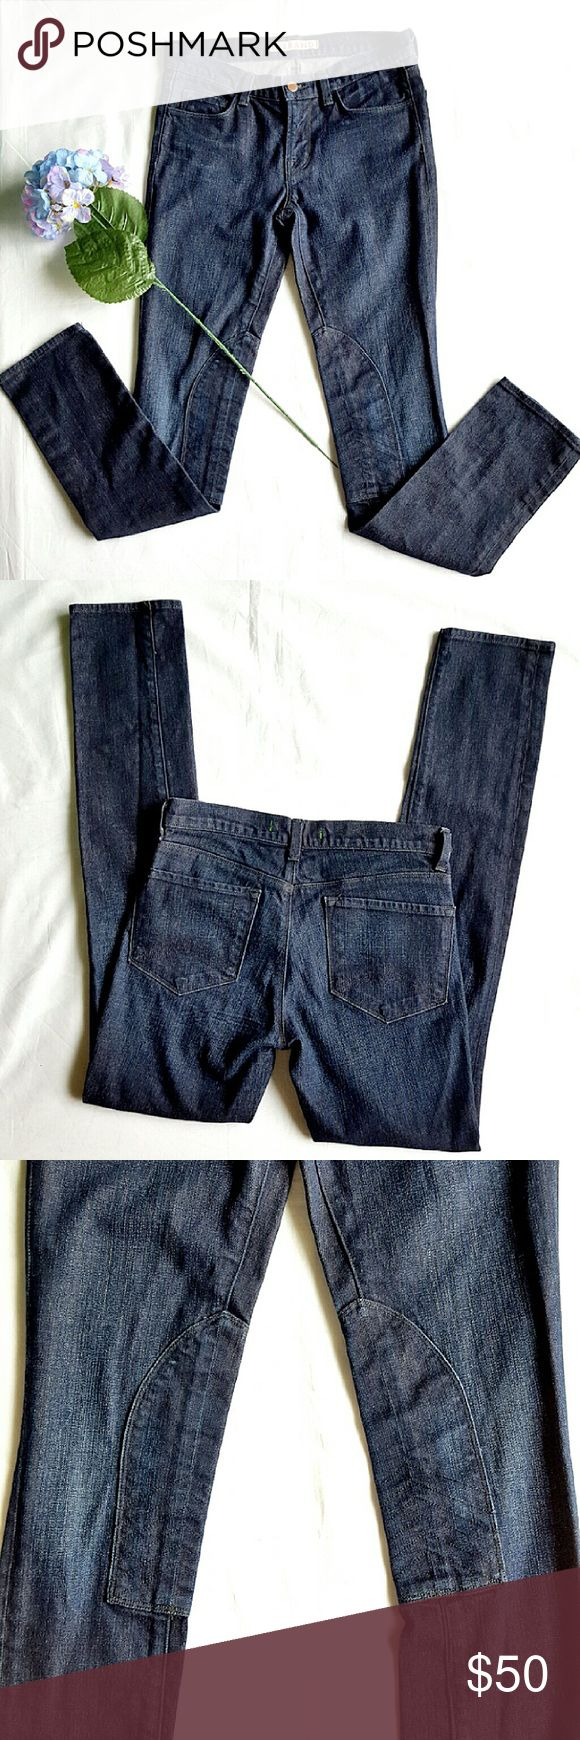 """J.Brand Skinny Jeans Style 91288 STIN in dark wash. Five pockets,  zipper closure and single button, belt loops, inside knee reinforcement patches.  98% cotton 2% elastane. 15"""" waist,  8.5"""" rise 32"""" inseam.  In excellent LIKE NEW condition. J Brand Jeans Skinny"""